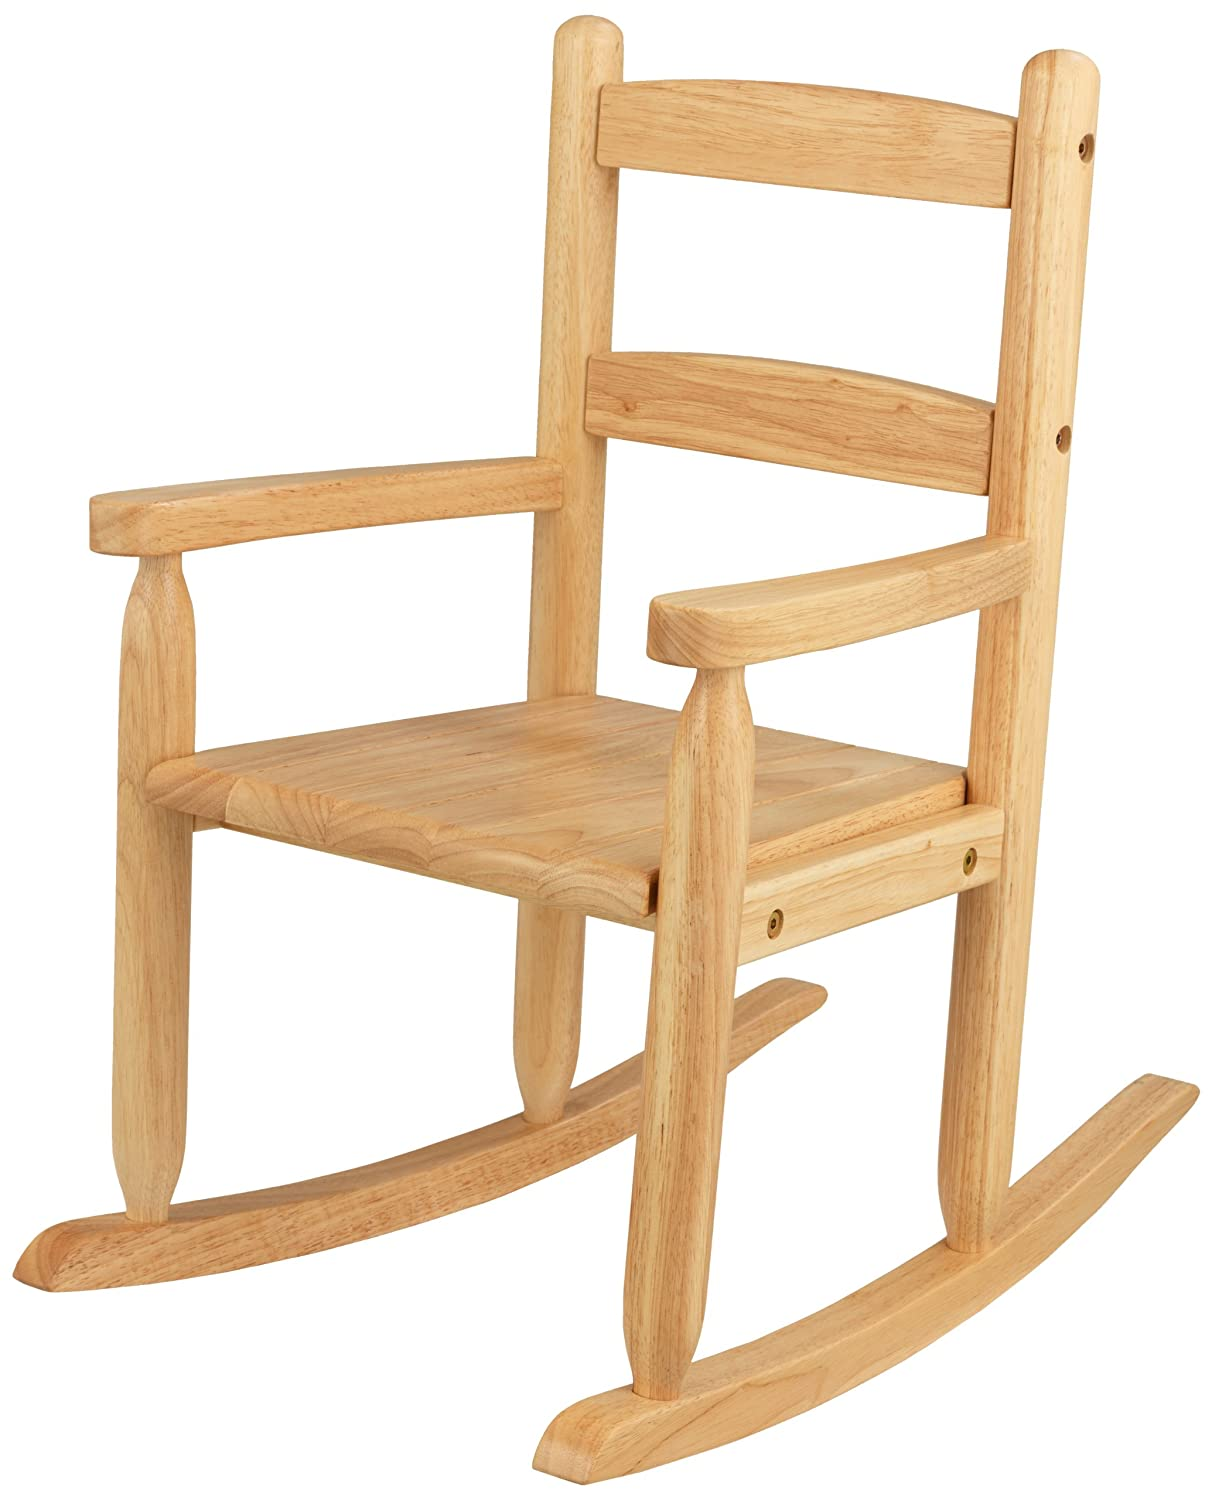 Amazon com  KidKraft 2 Slat Rocking Chair   Honey  Toys   Games. Kidkraft Rocking Chair Cherry. Home Design Ideas